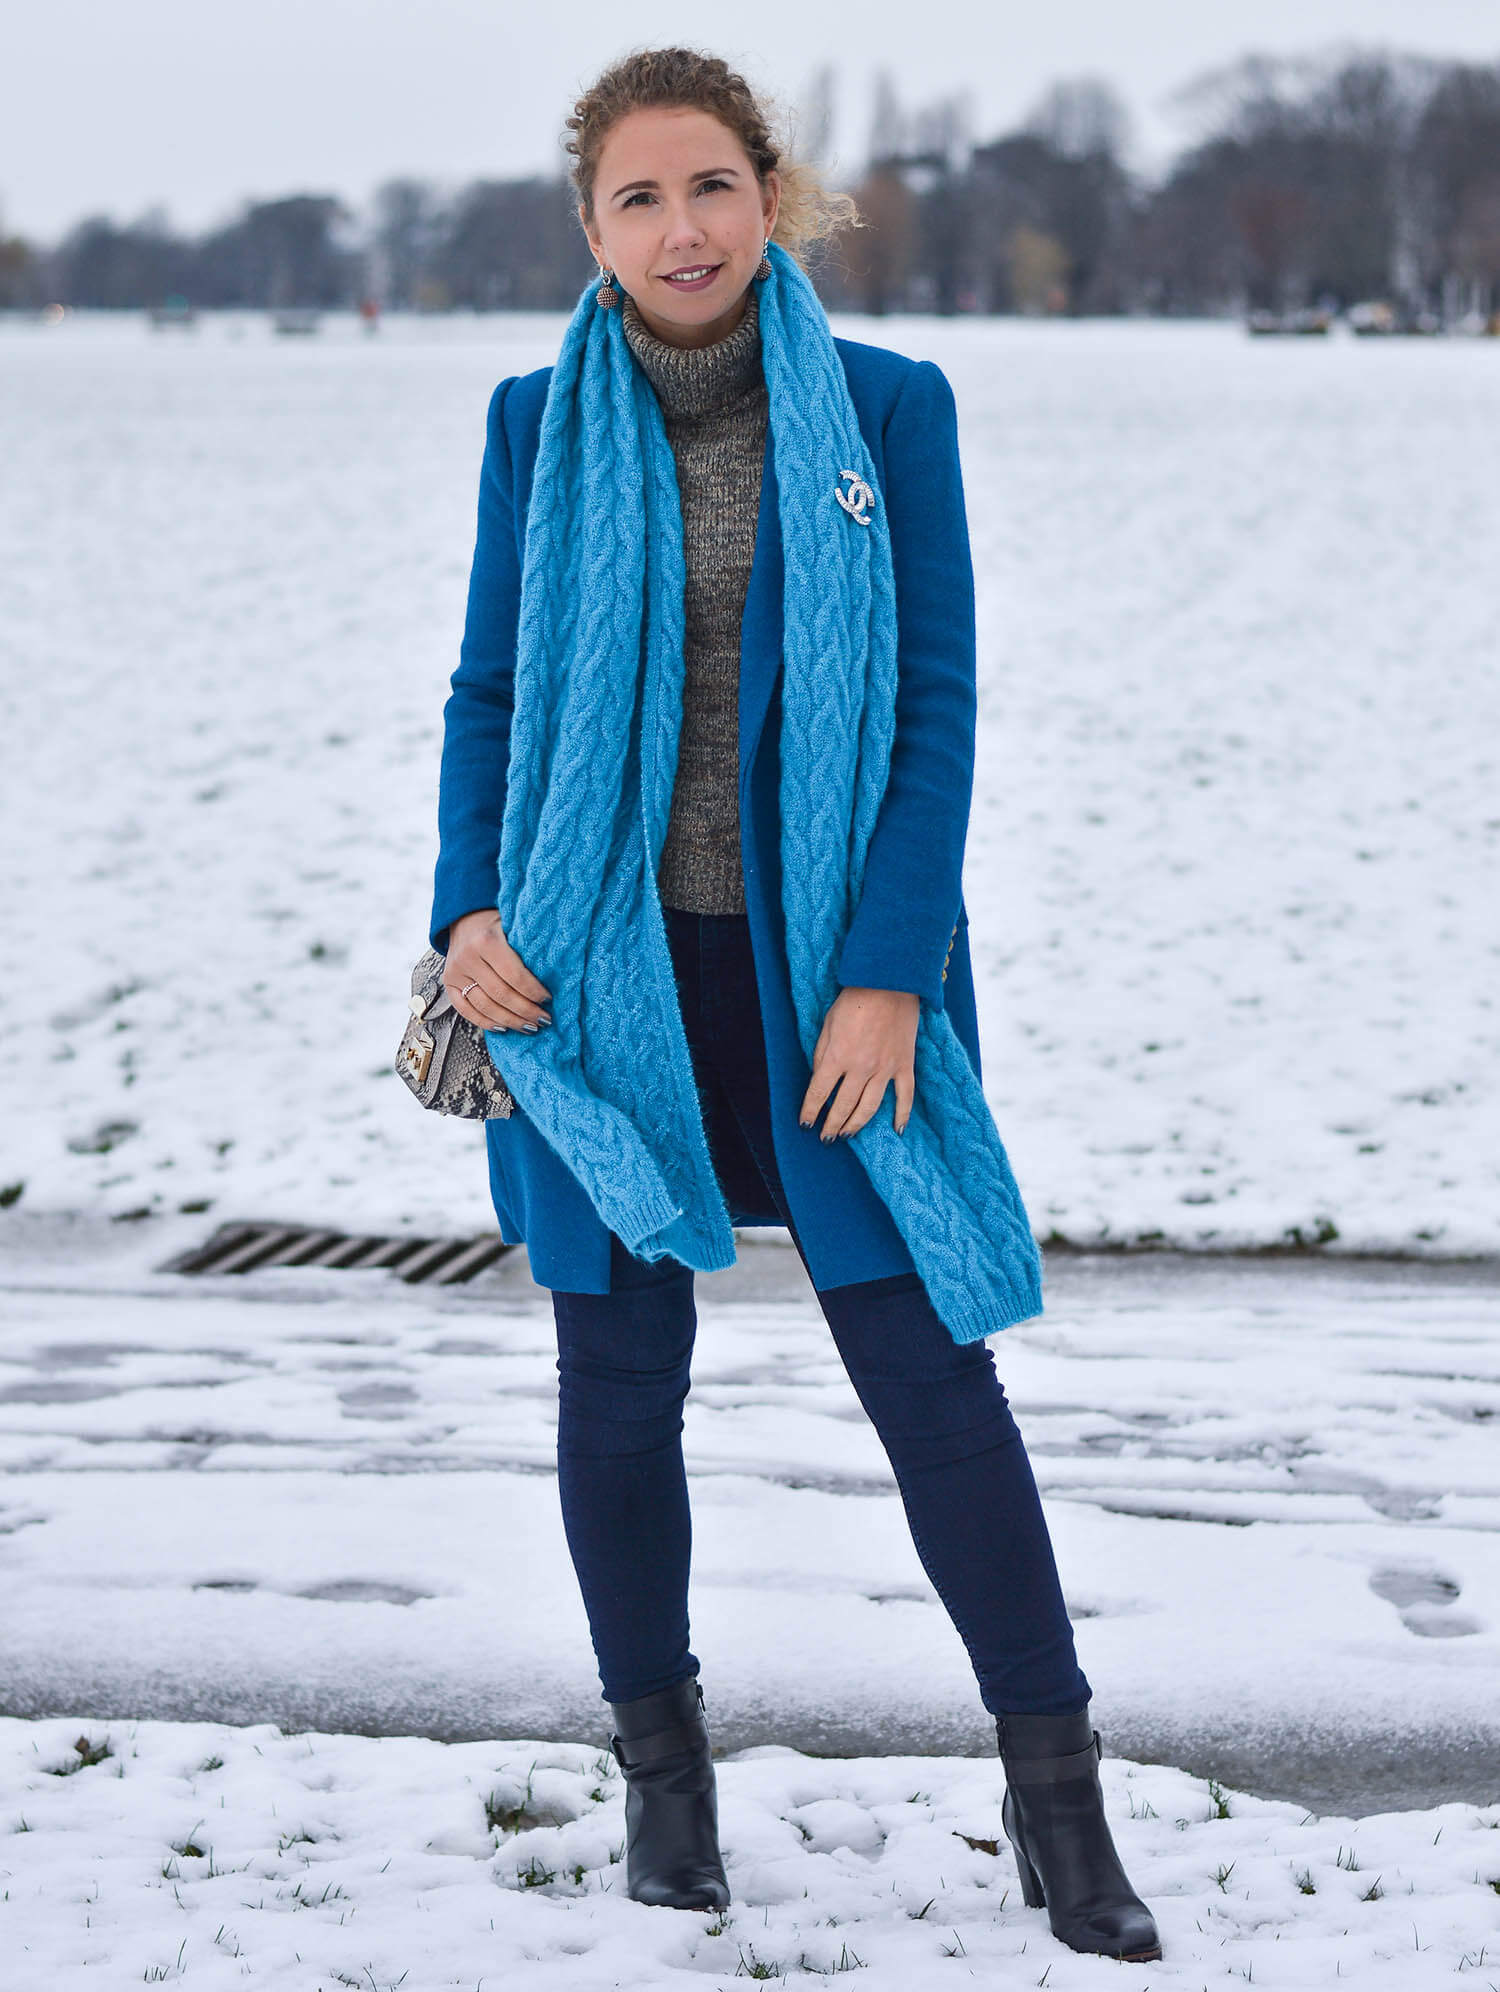 Kationette-fashionblogger-nrw-Happy-New-Year-Outfit-Azure-Blue-Coat-and-Scarf-for-a-snowy-day-in-Dusseldorf